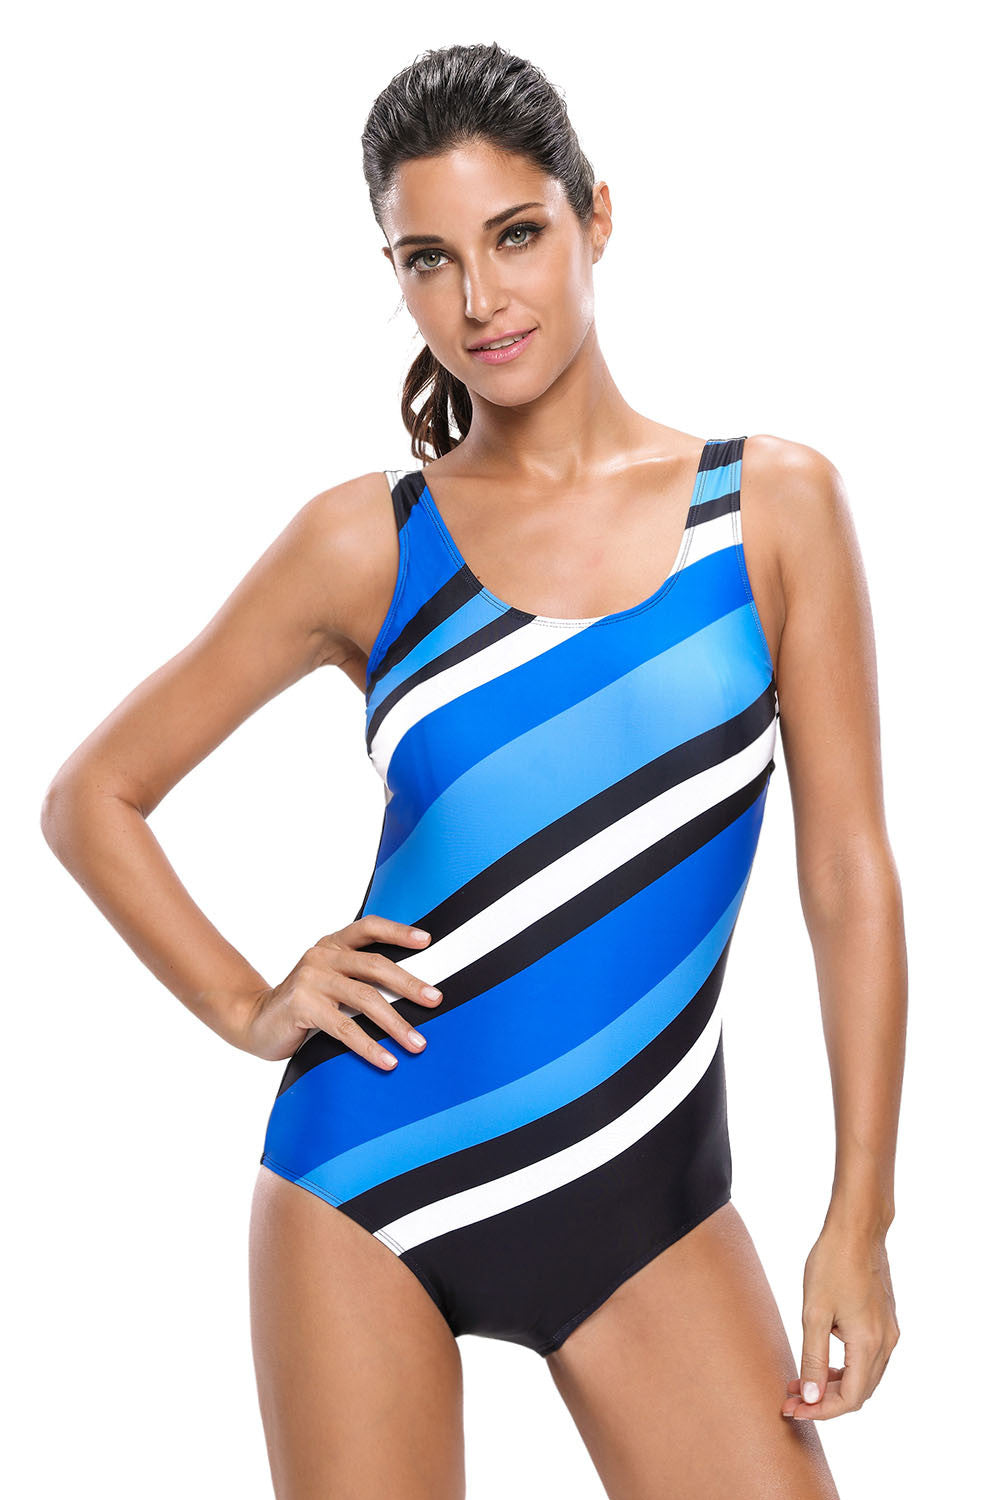 Chicloth Bluish Oblique Stripes One Piece Swimsuit